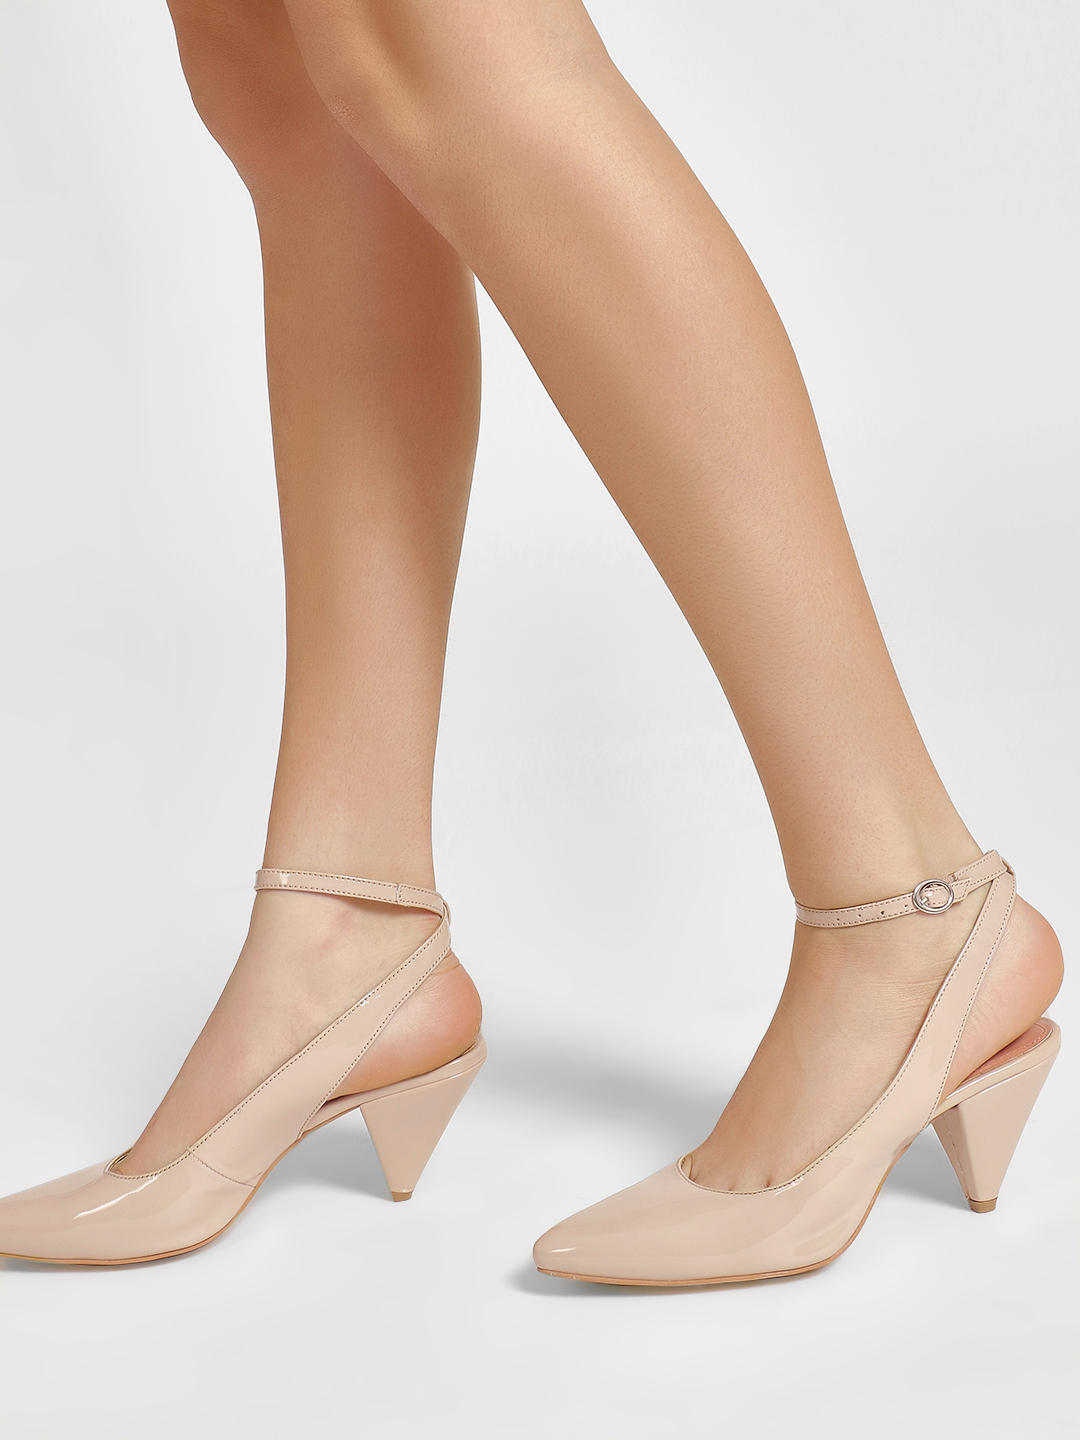 KOOVS Nude Patent Cone Heeled Shoes 1